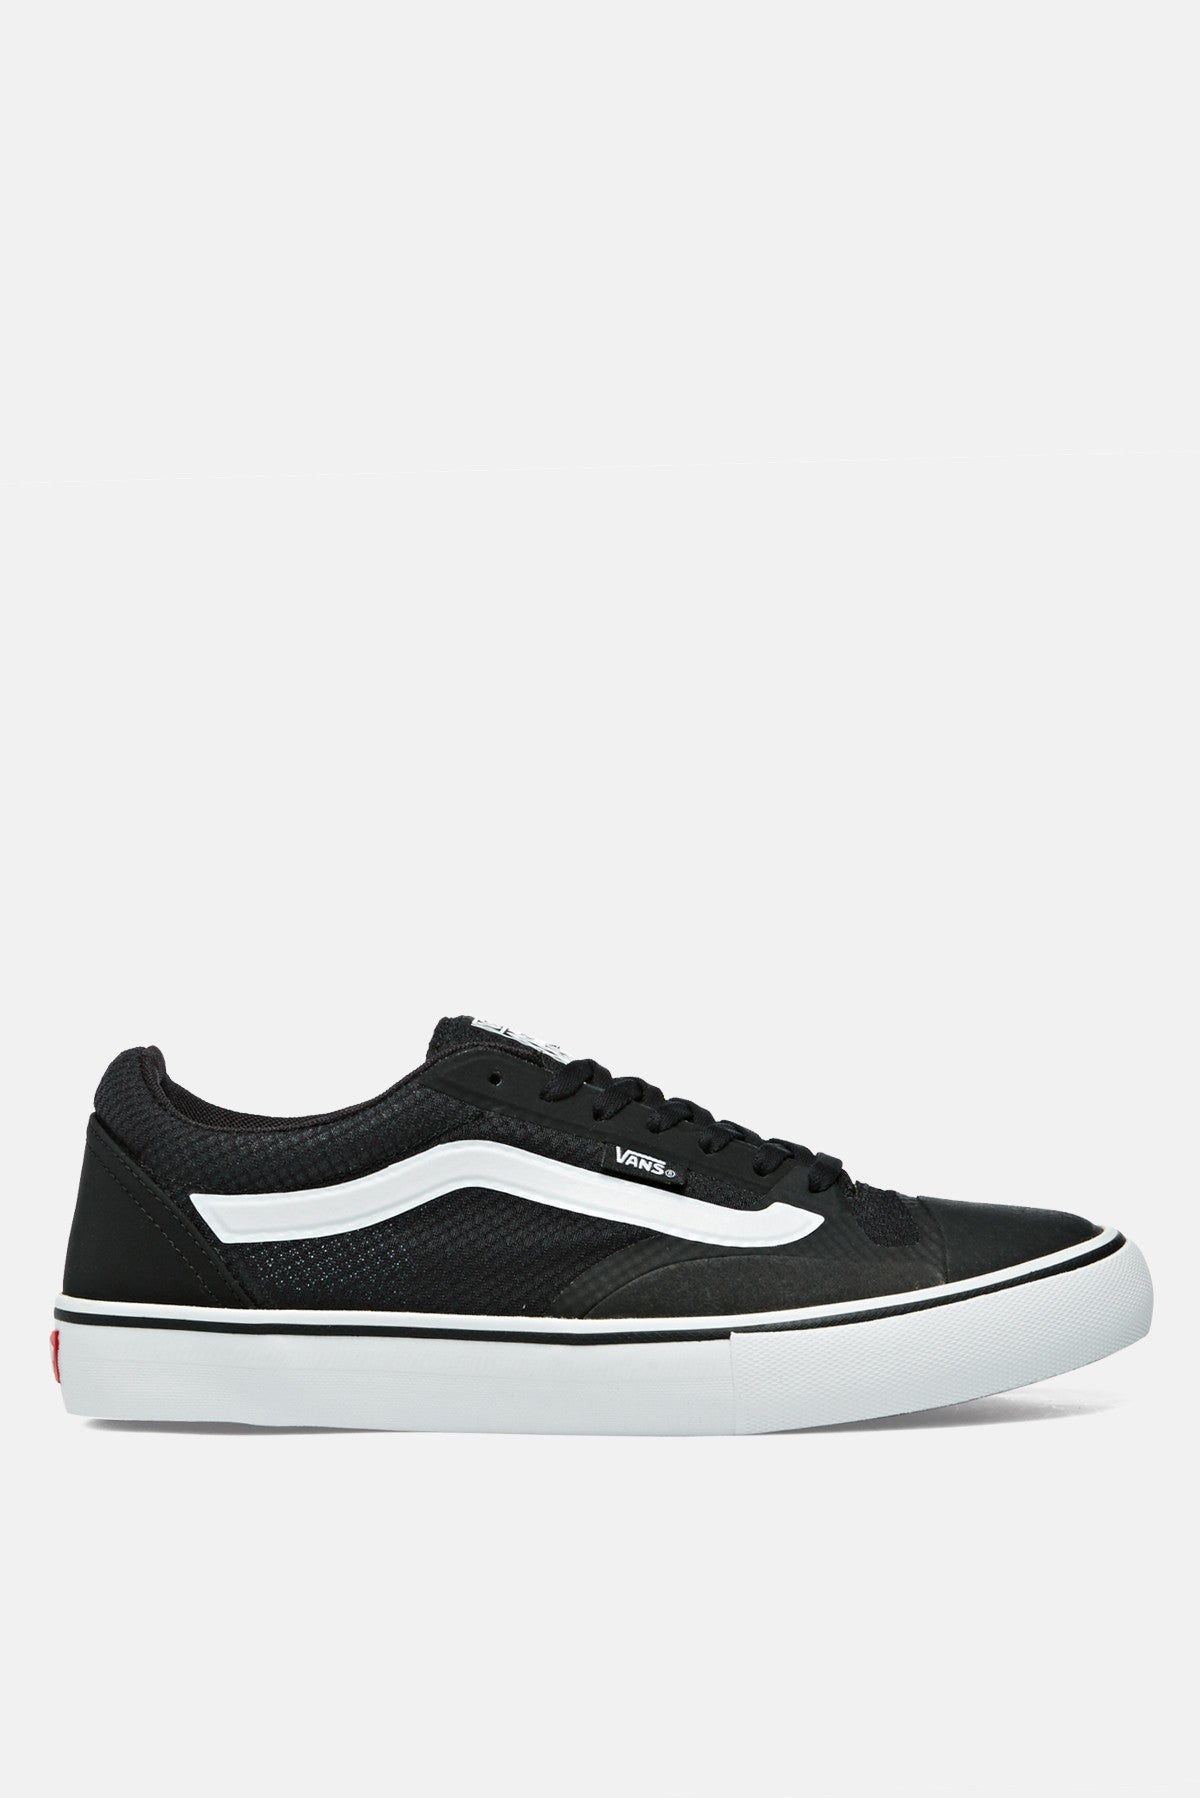 4dce88c08f Vans AVE Rapidweld Pro Lite Shoes available from Priory